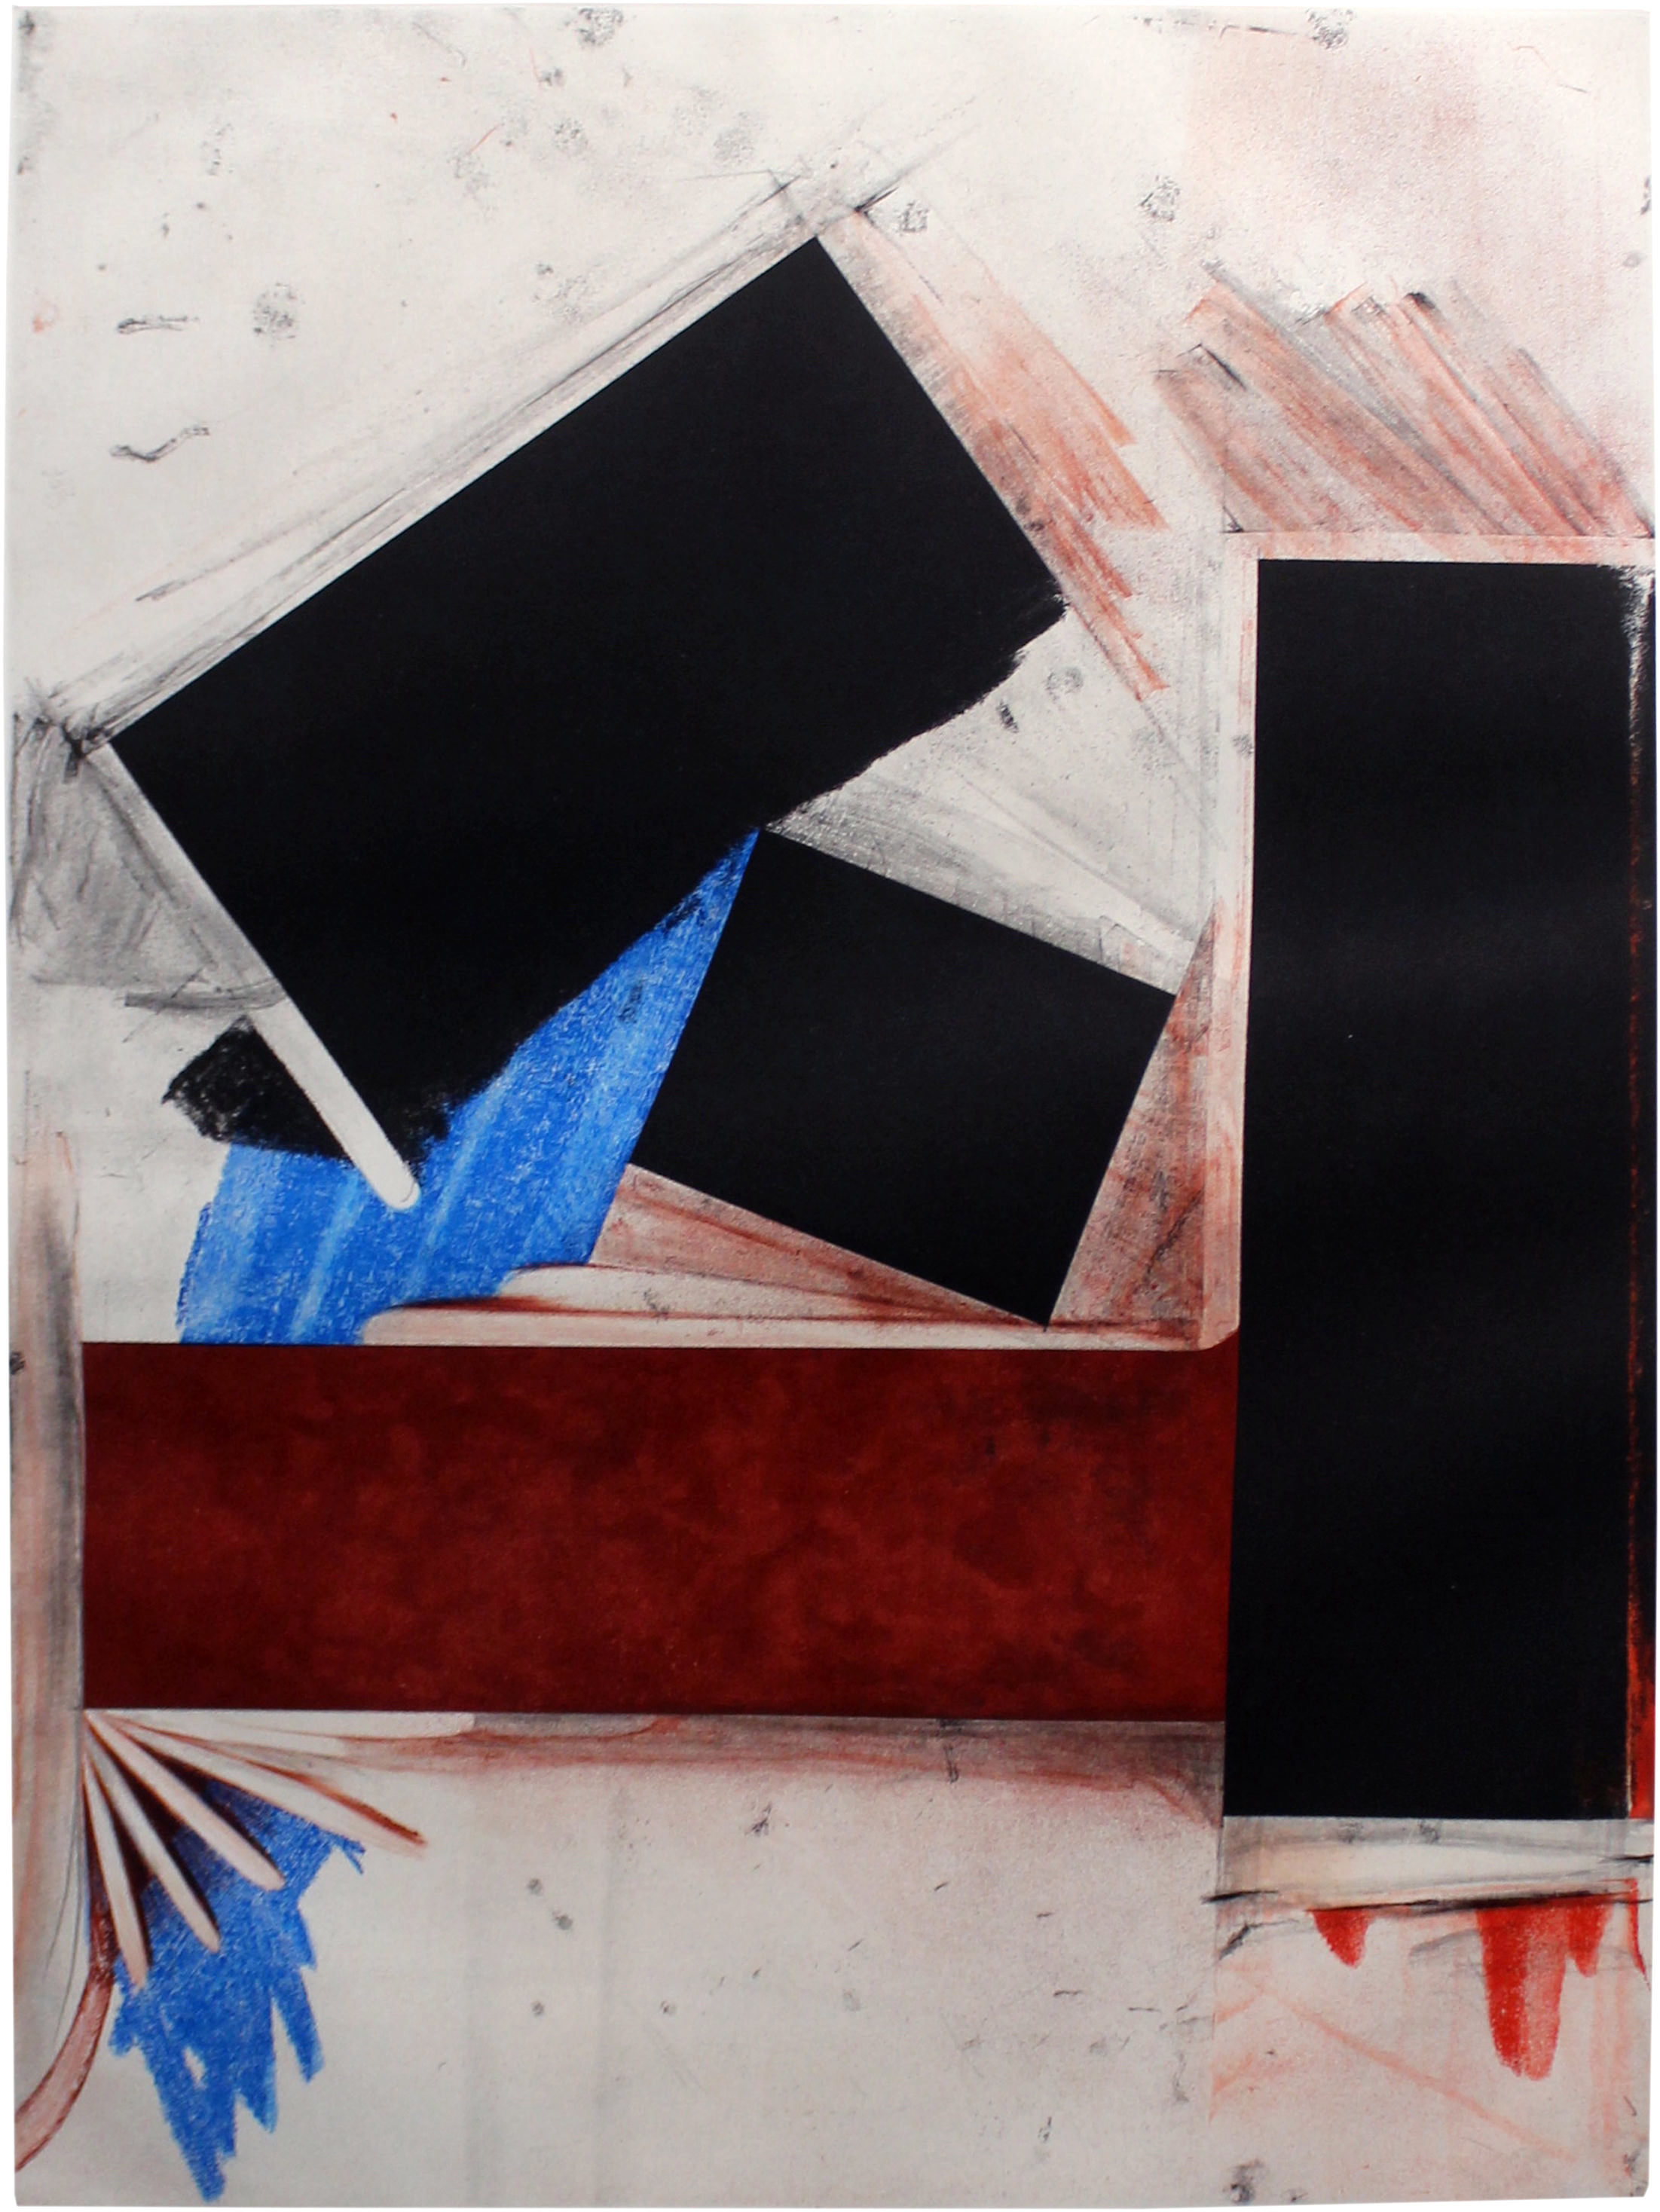 Untitled (Red Square/with Blue) 1992